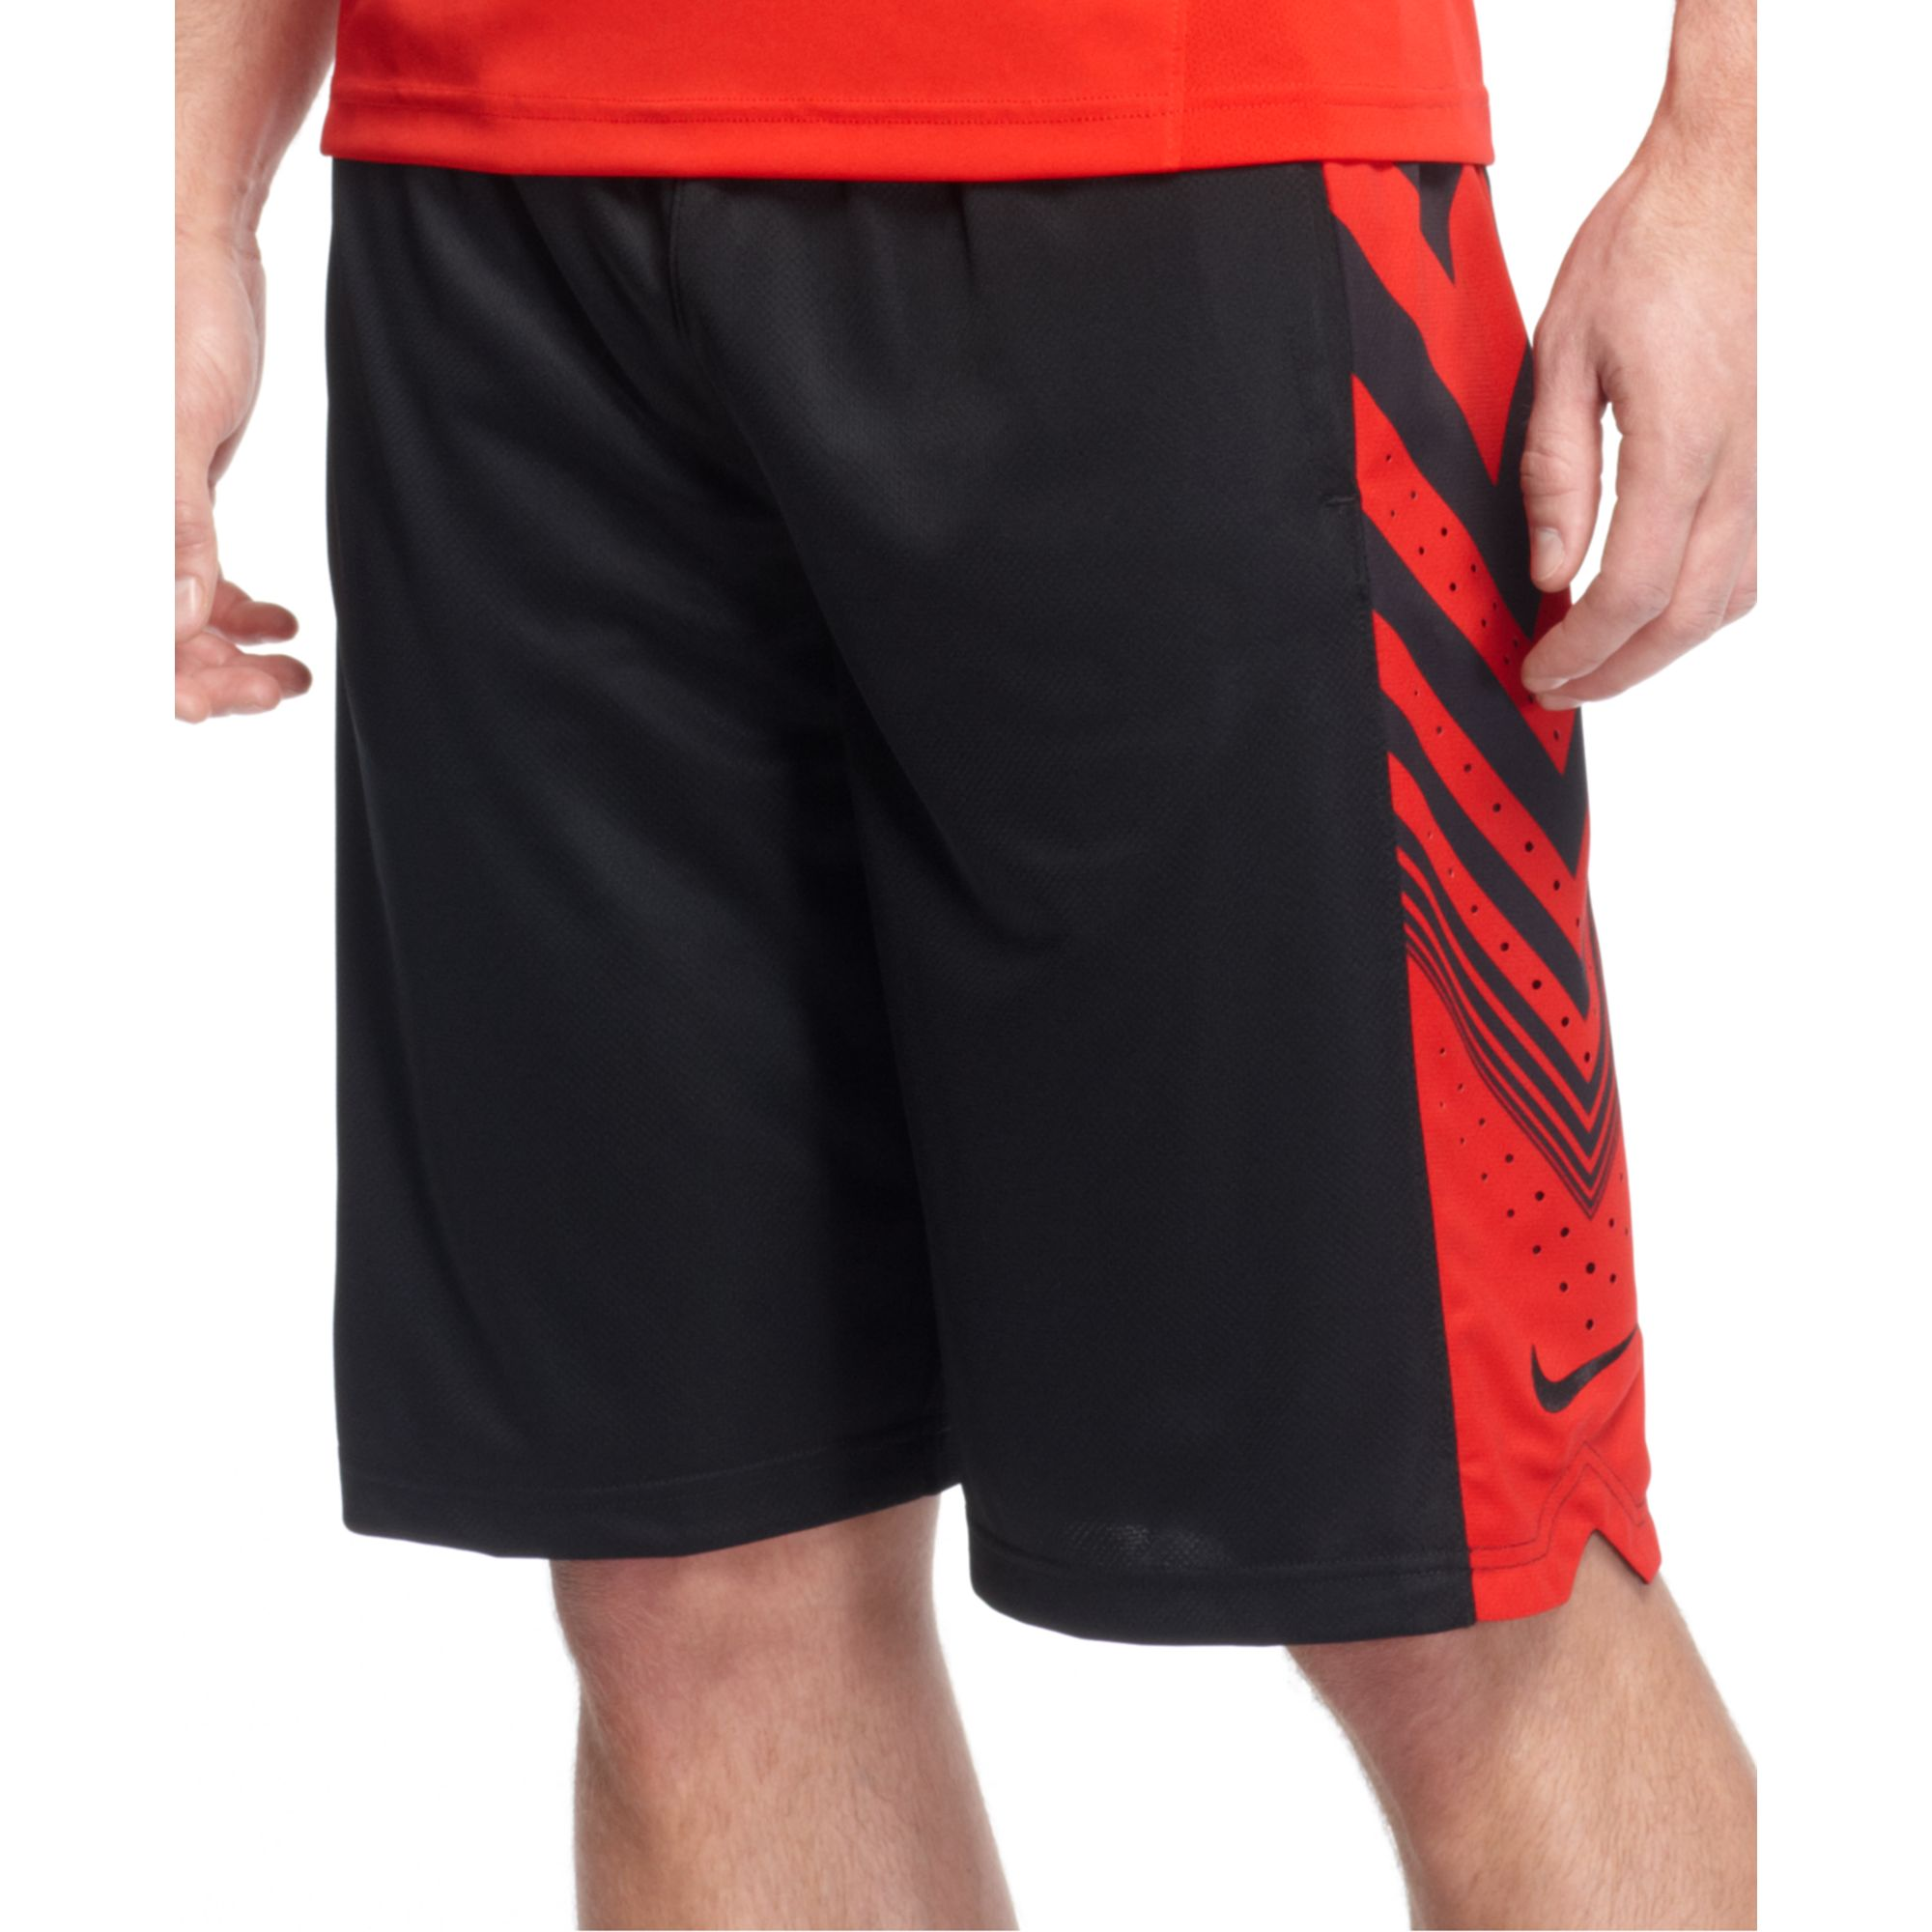 e90b943a03 Nike Sequalizer Basketball Shorts in Black for Men - Lyst